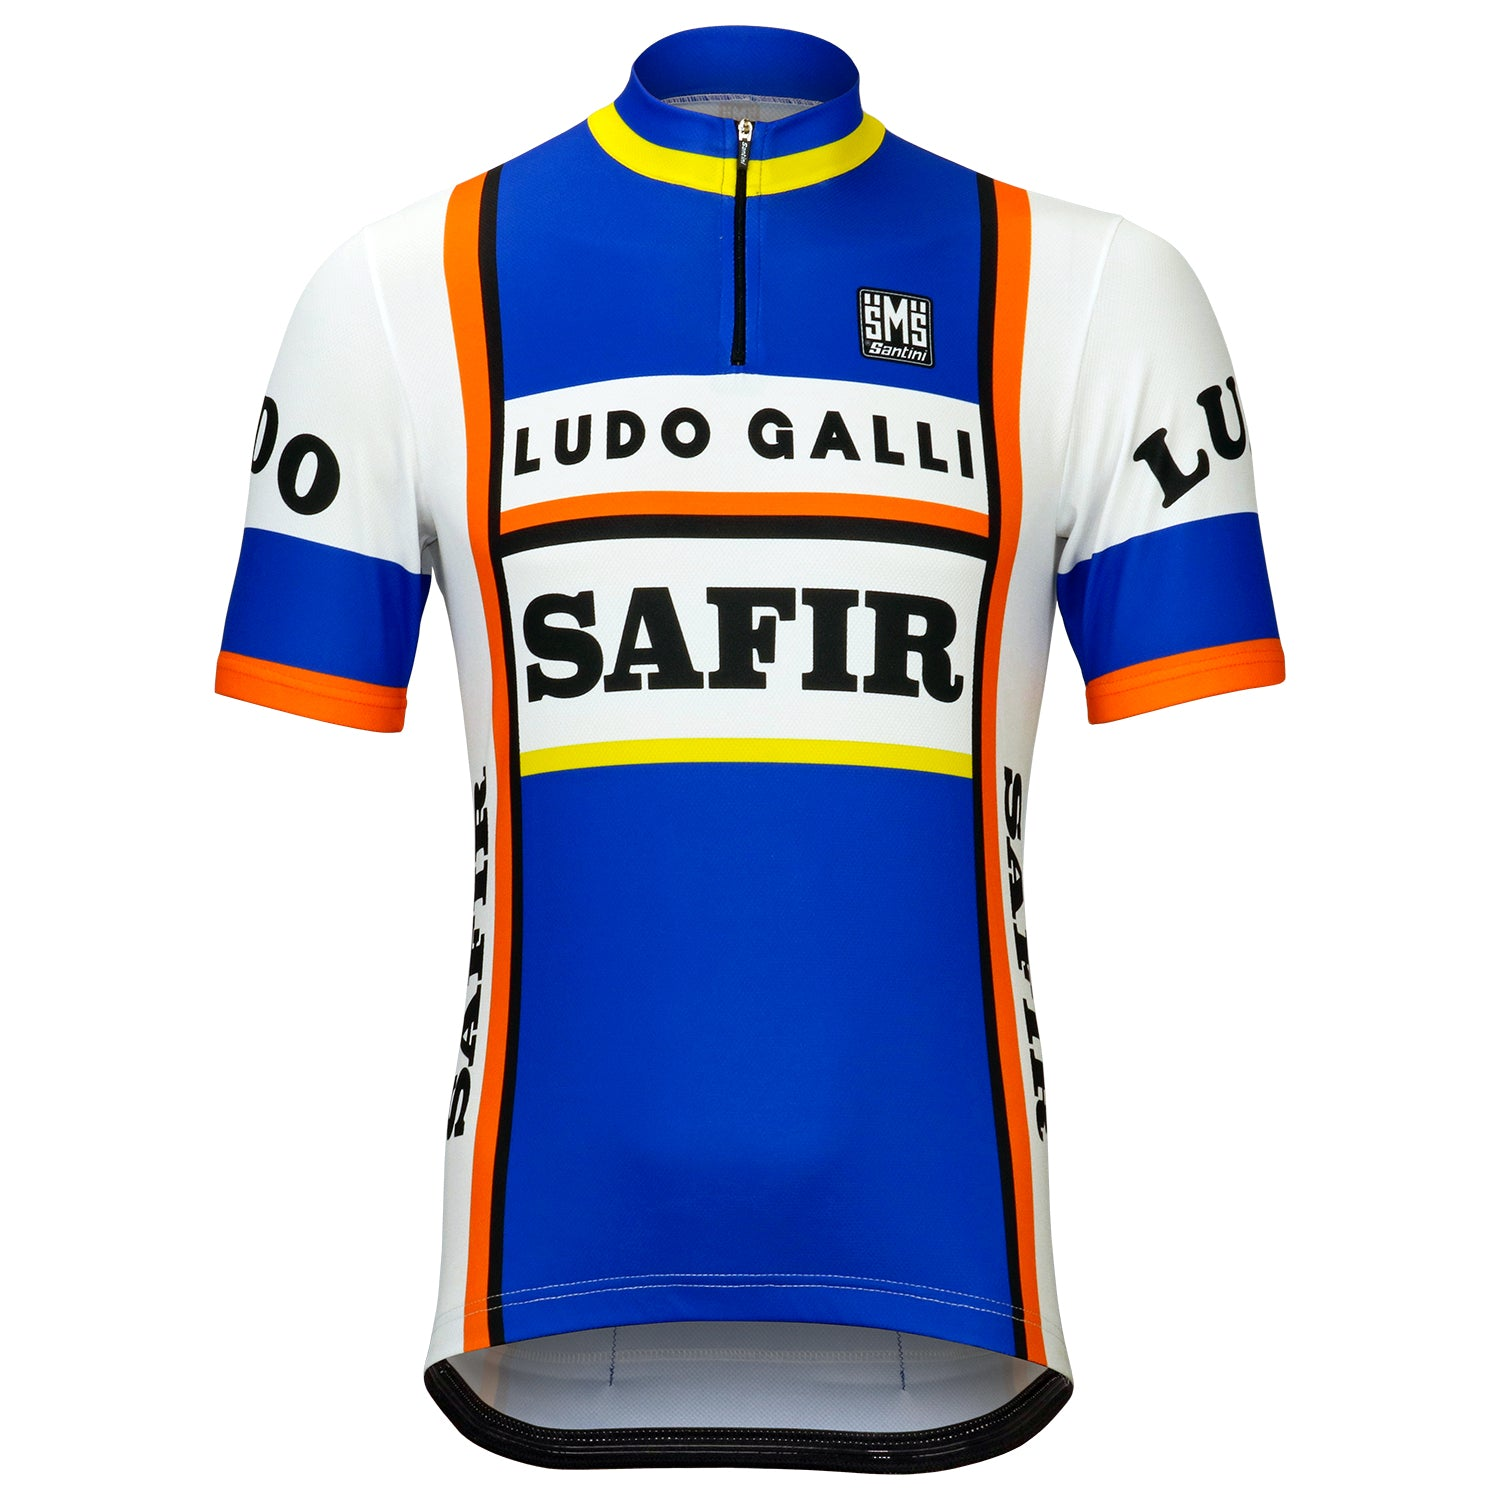 Safir Ludo Galli Retro Team Jersey